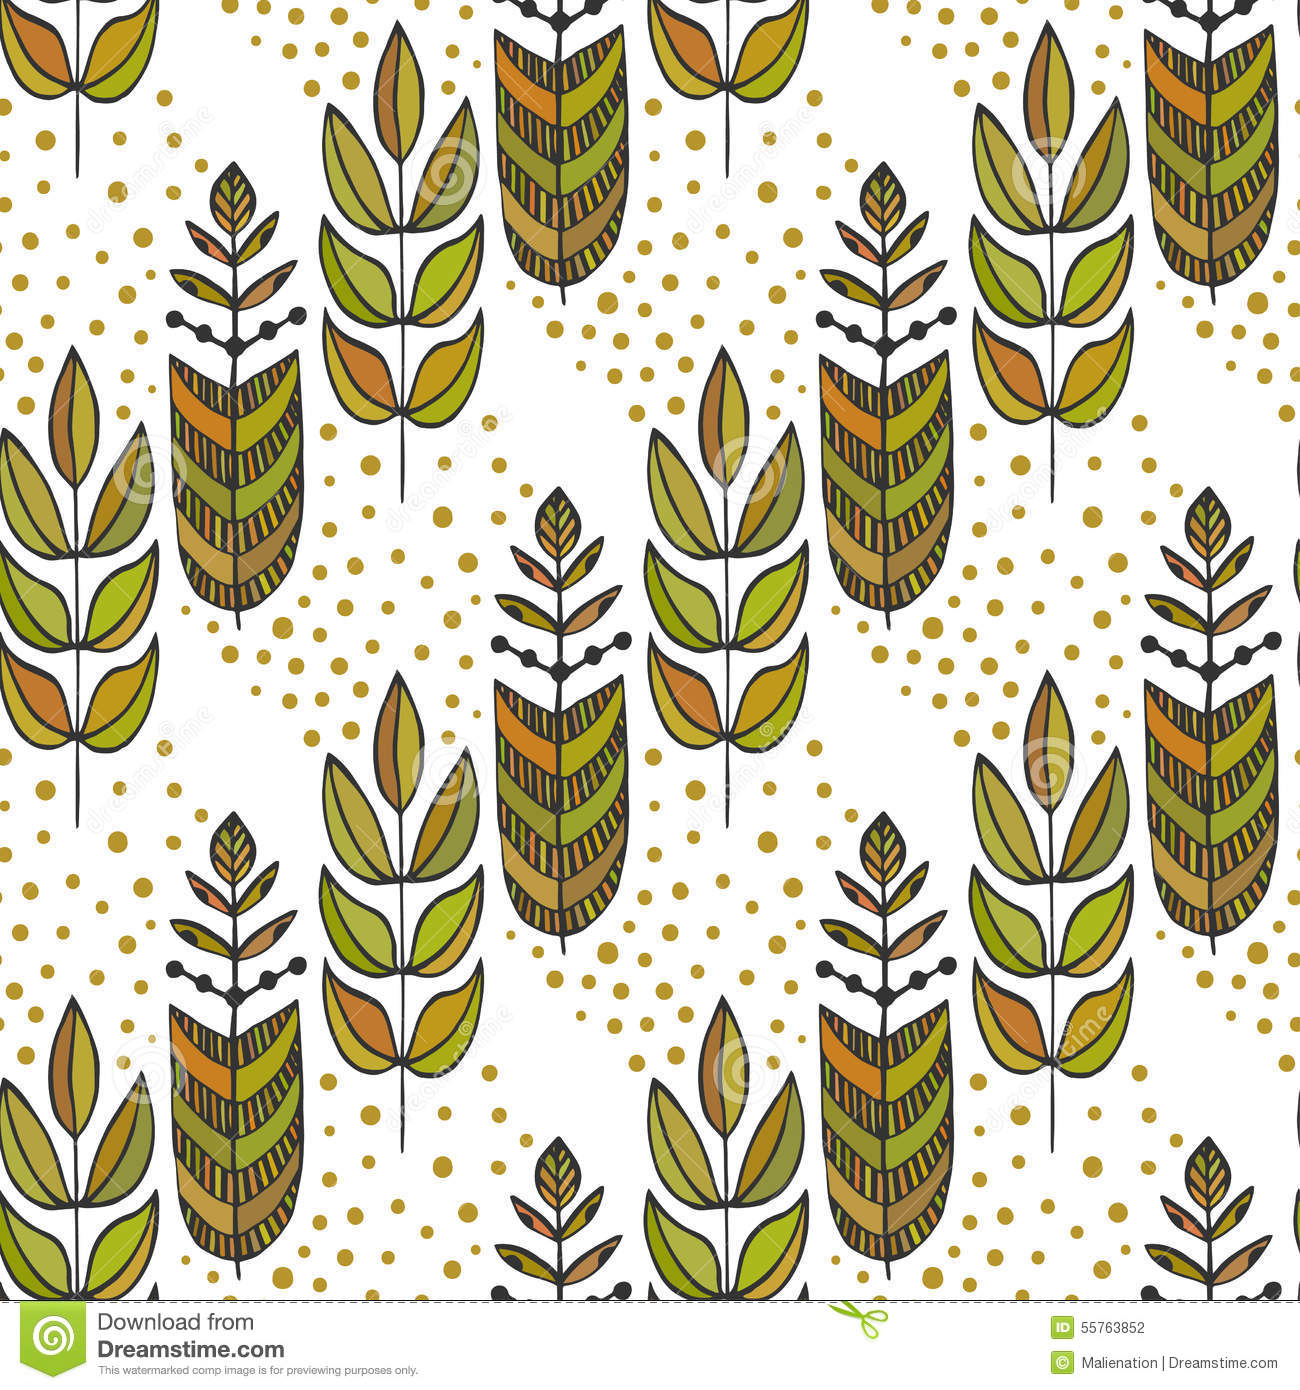 Fabric tree pattern - Ethnic Seamless Pattern With Ornamental Colorful Stylized Leaves Tree Endless Texture Template For Fabric